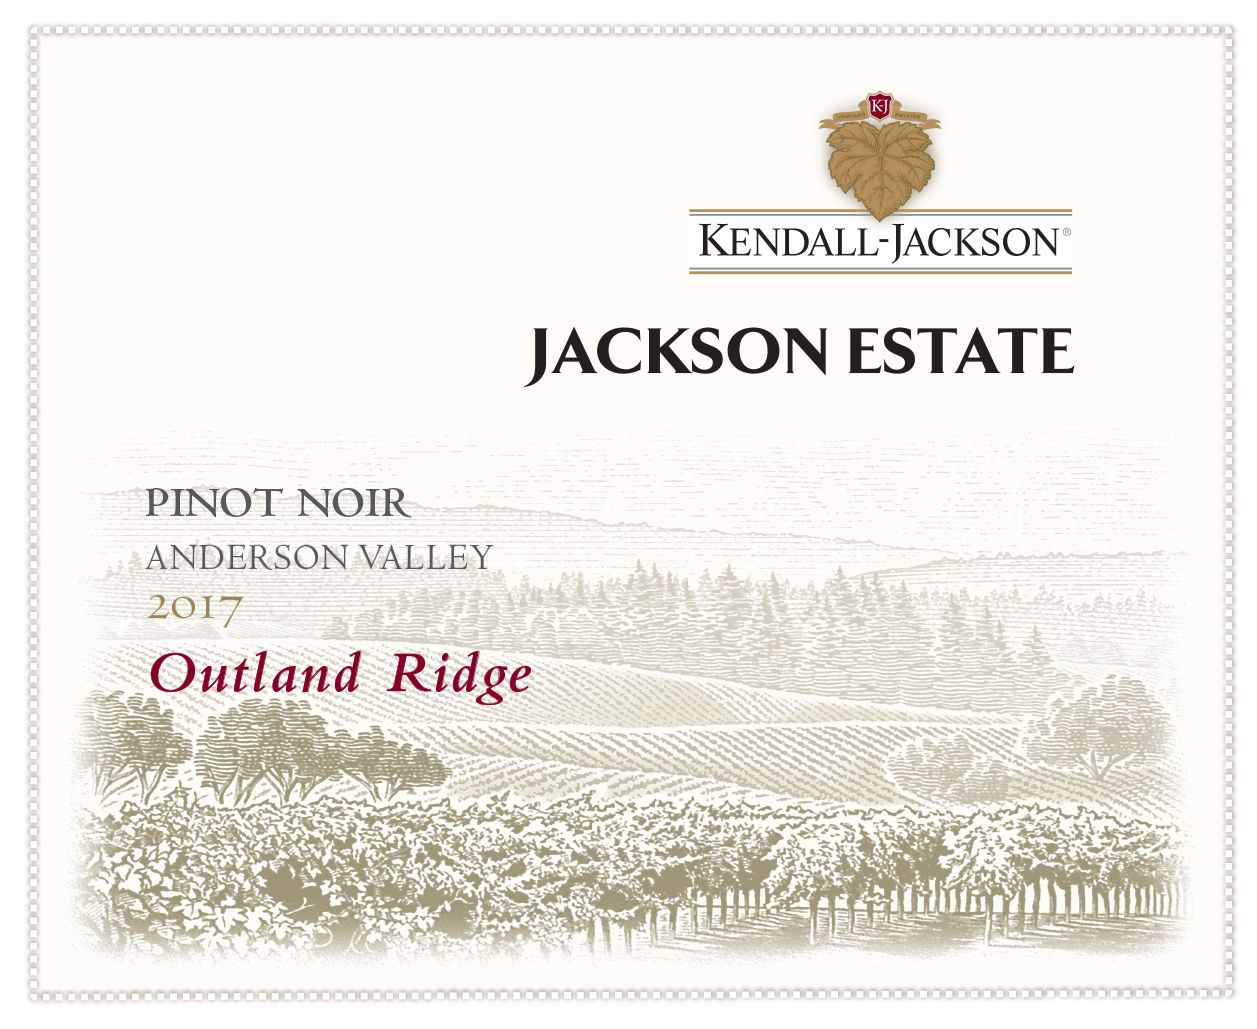 Kendall-Jackson Jackson Estate Outland Ridge Pinot Noir 2017  Front Label